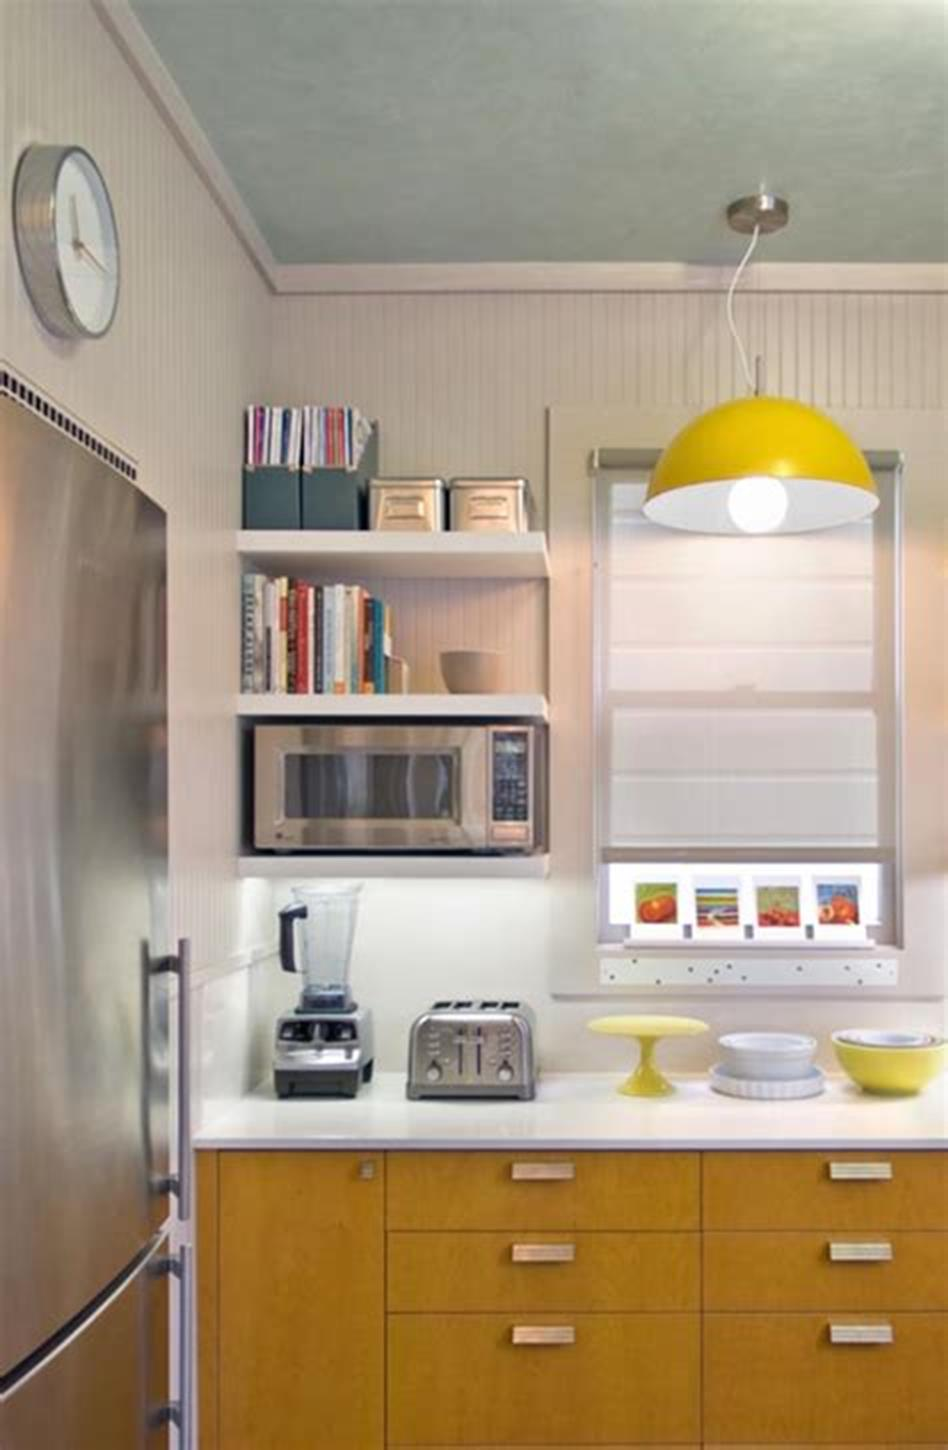 43 Amazing Kitchen Remodeling Ideas for Small Kitchens 2019 14